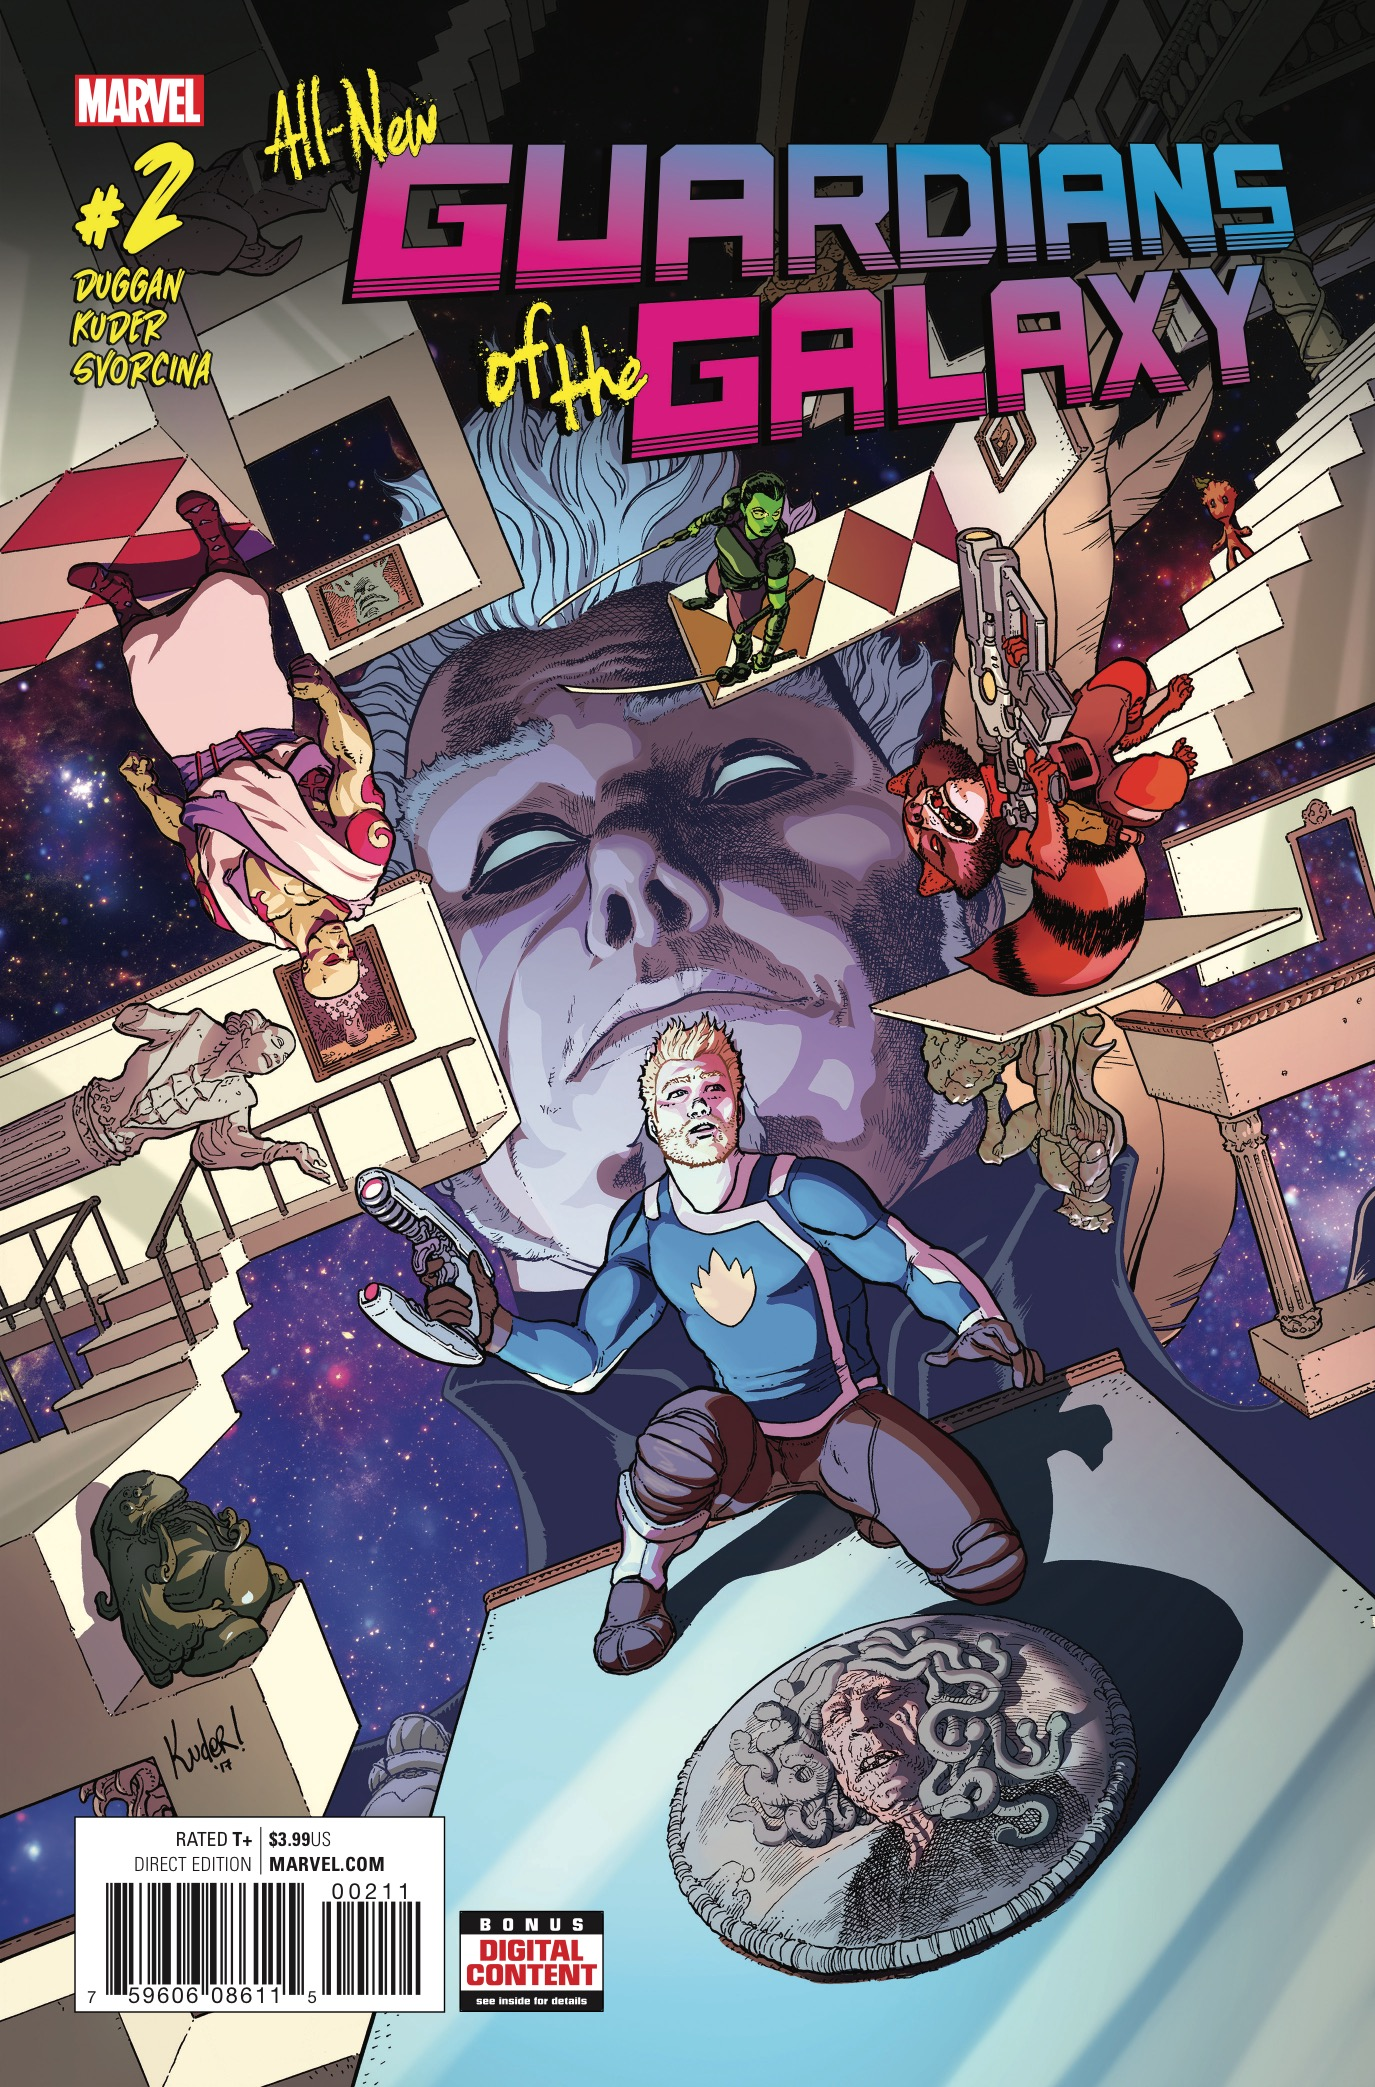 All-New Guardians of the Galaxy #2 Review